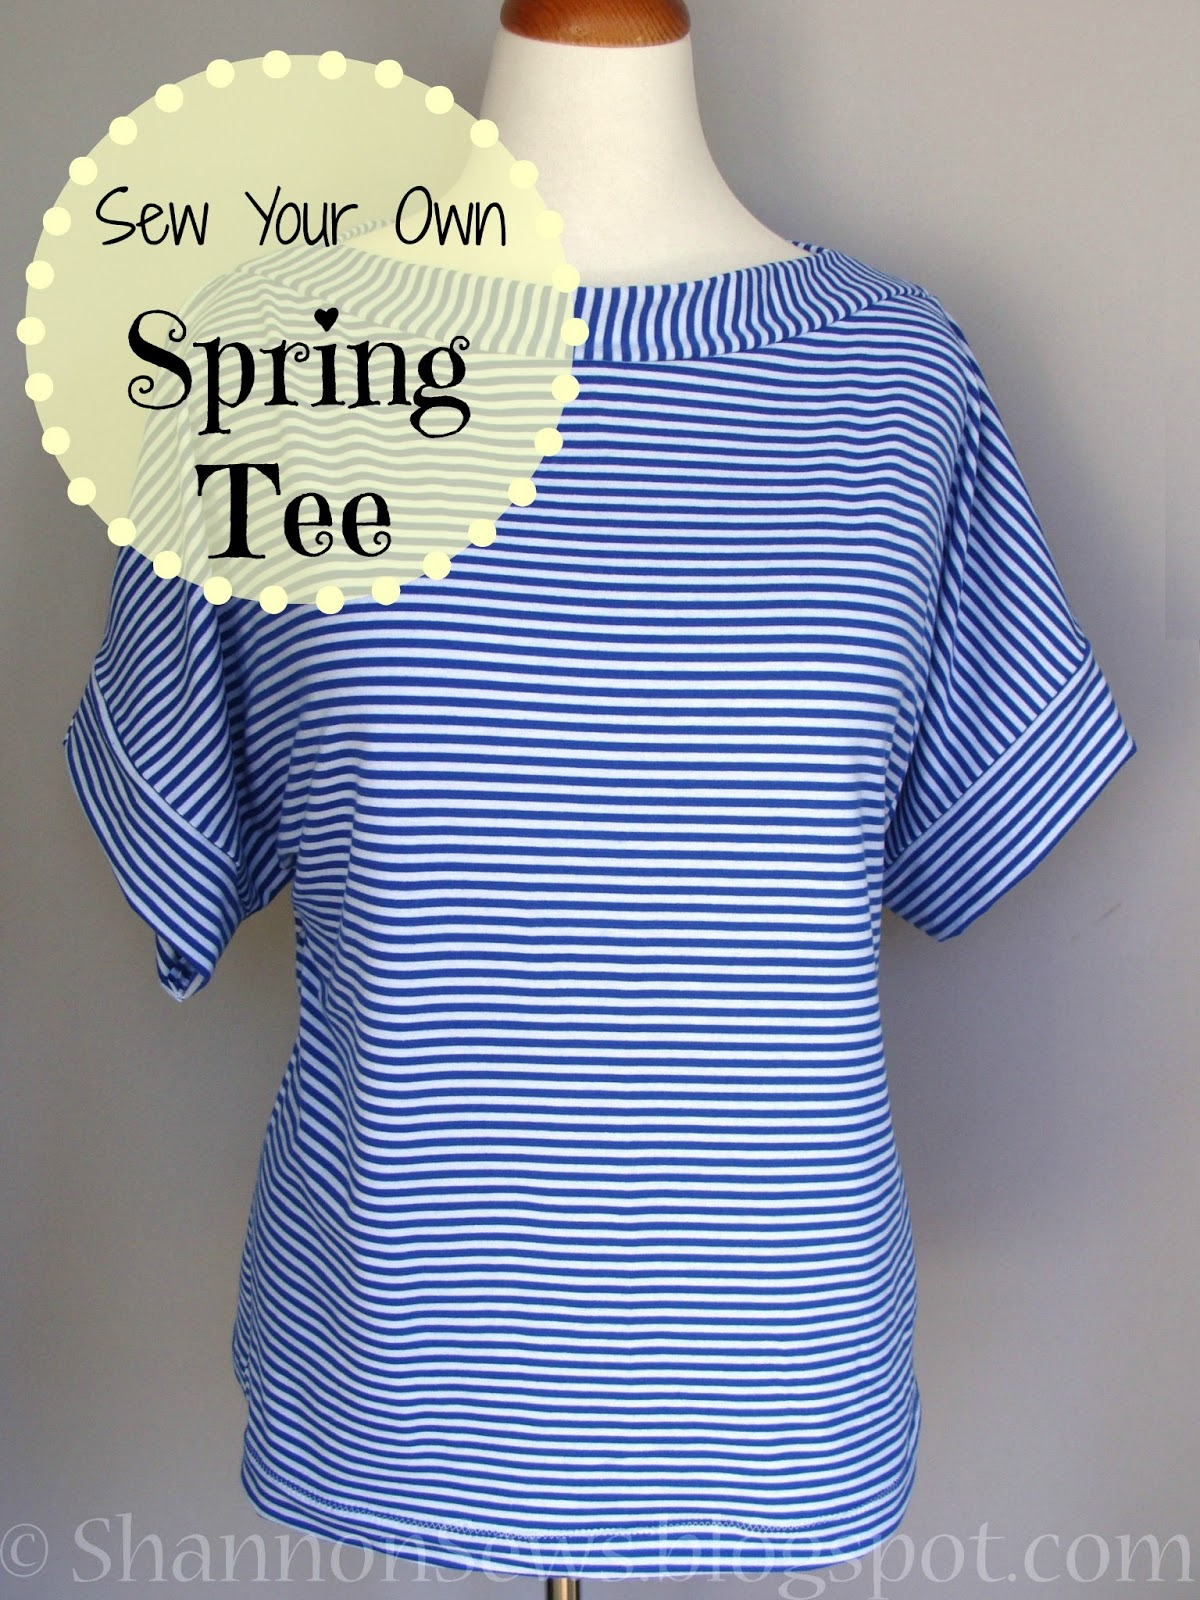 How To Sew Your Own Easy T Shirt